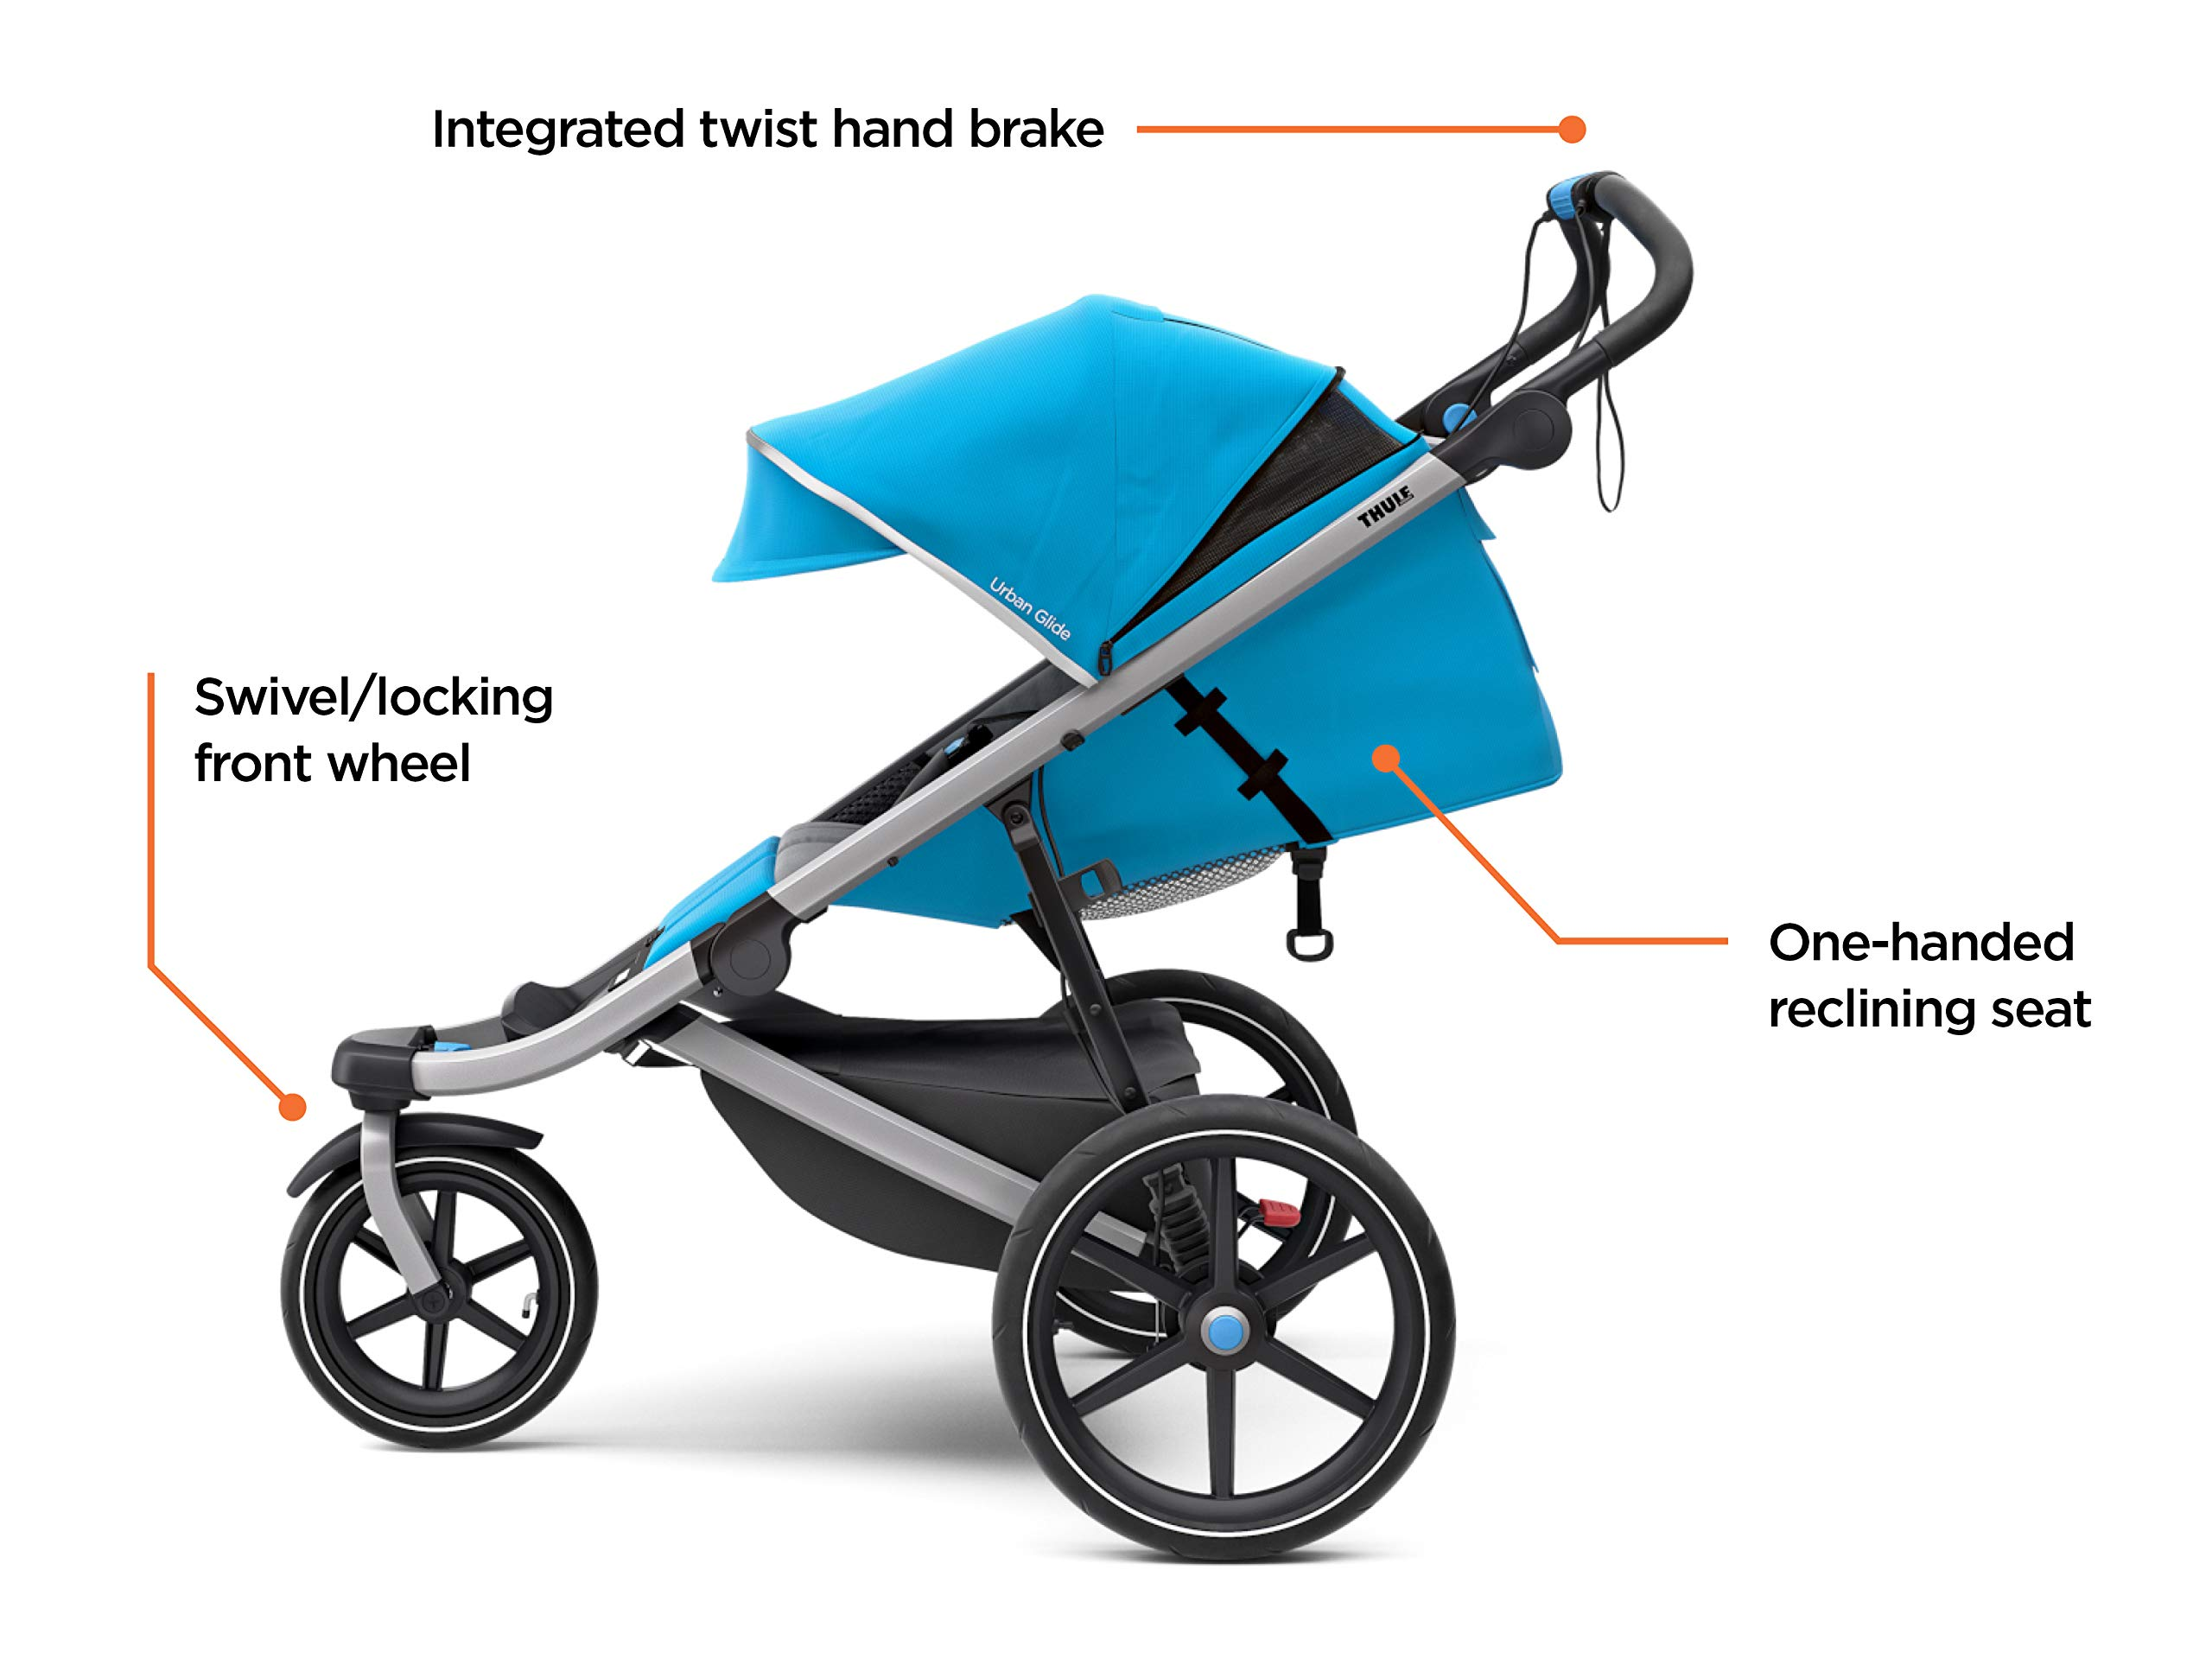 Thule Urban Glide 2.0 Jogging Stroller (Thule Blue w/Silver Frame) Thule One-handed, compact fold for easy storage and transportation Integrated twist hand brake provides speed control on hilly terrain Multi-position canopy with side-ventilation windows ensures your child is comfortable 3